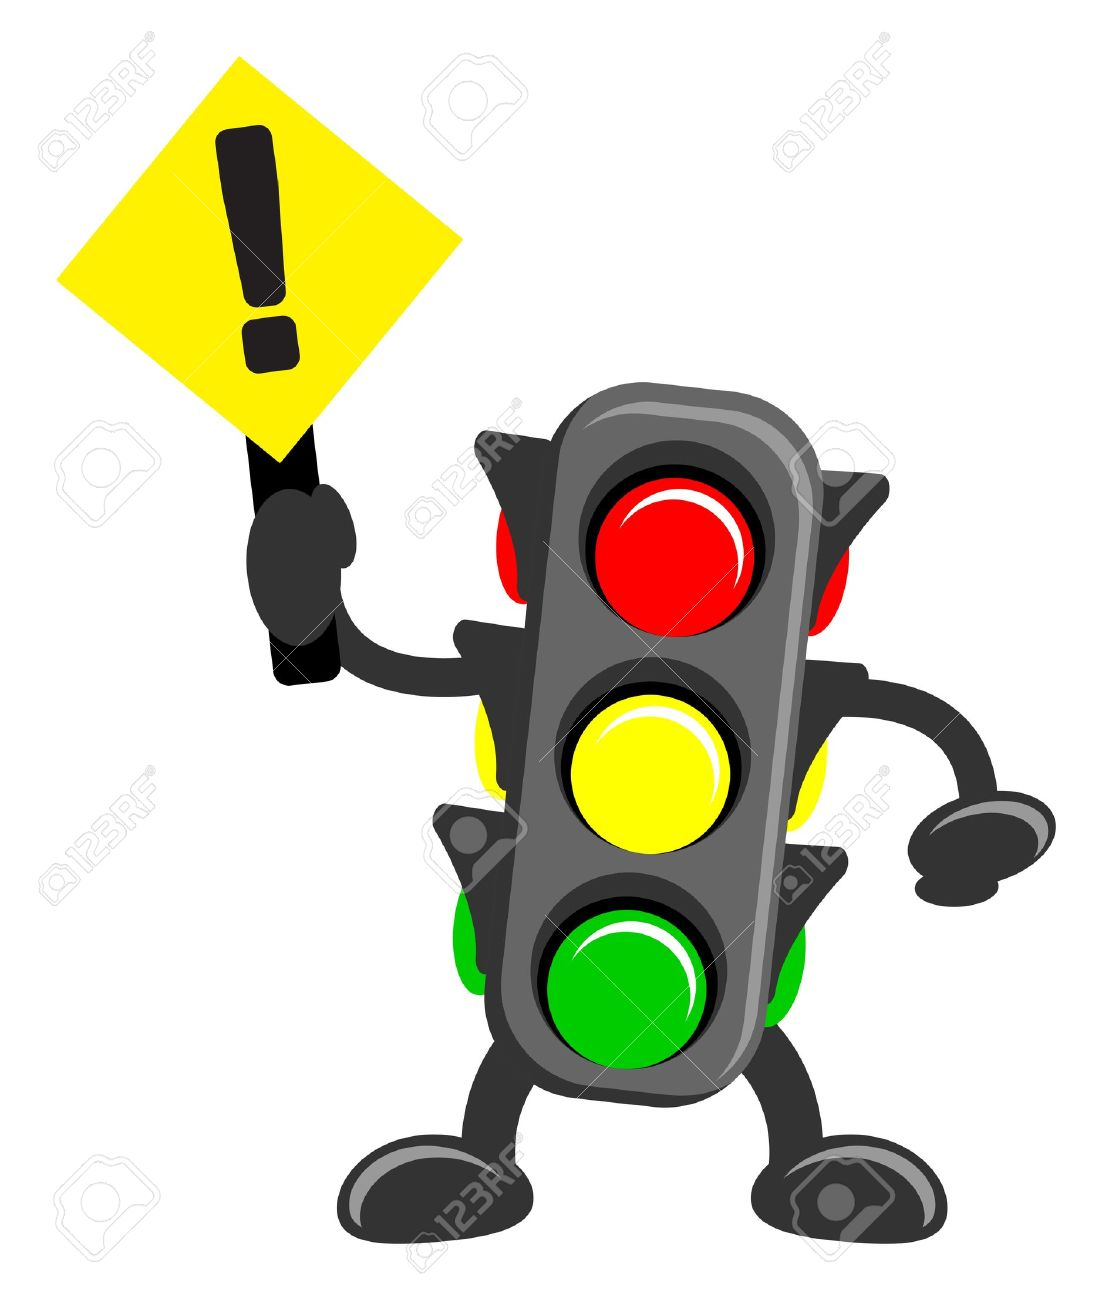 https://previews.123rf.com/images/erwinwira/erwinwira1204/erwinwira120400052/13196838-illustration-of-cartoon-traffic-light-Stock-Photo.jpg